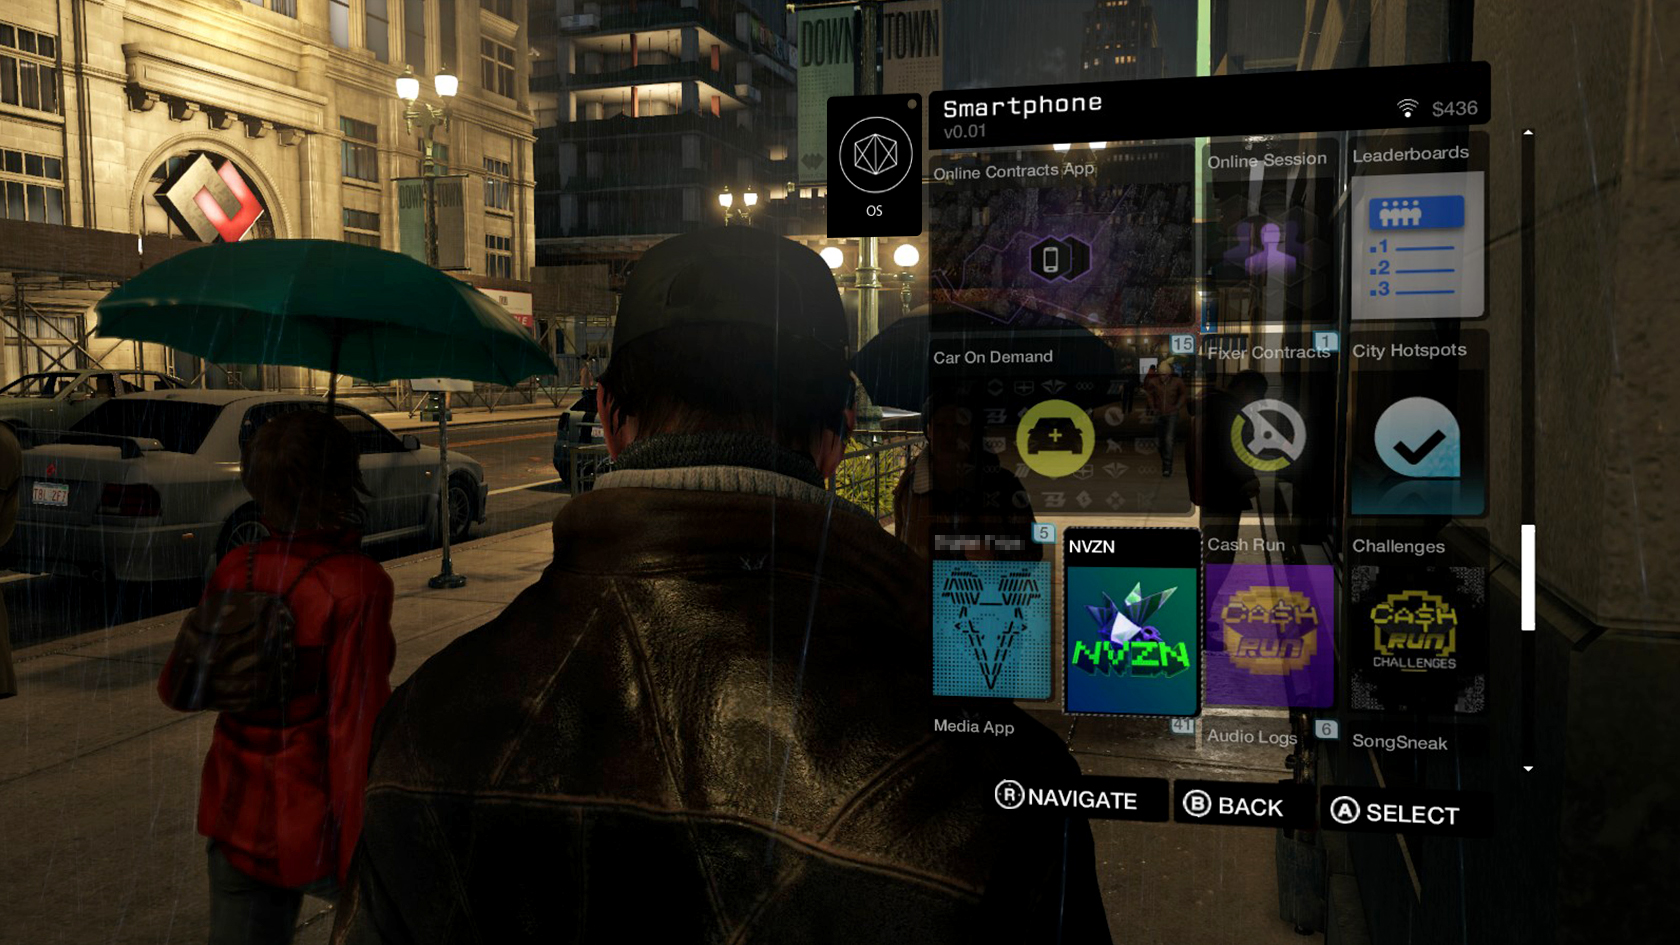 6souls games level kill call that finished scan people just finally trophies using take side took time once game again below before cops wrong between triggering escaping them everyone killed having while drops have theres found things only managed second jams times frustrating very trial error boat speed east marina dropped achieving